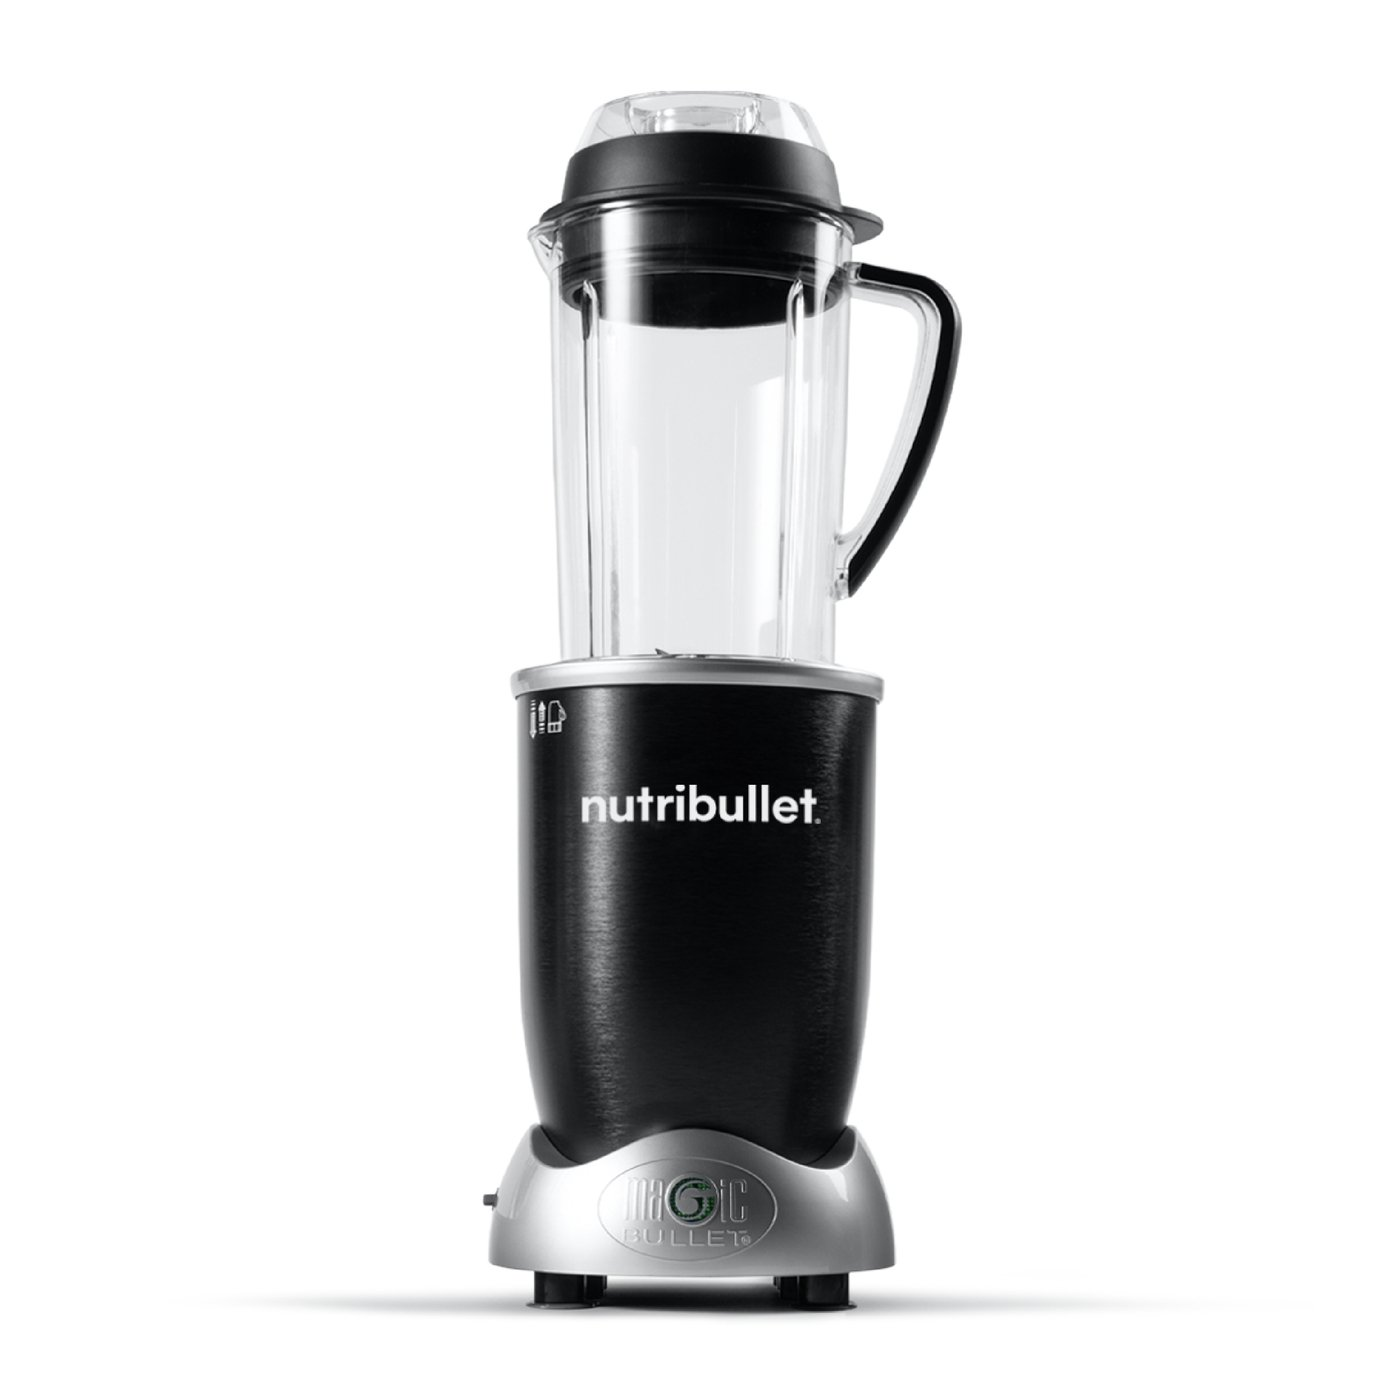 NutriBullet 10 Piece Nutritional Blender